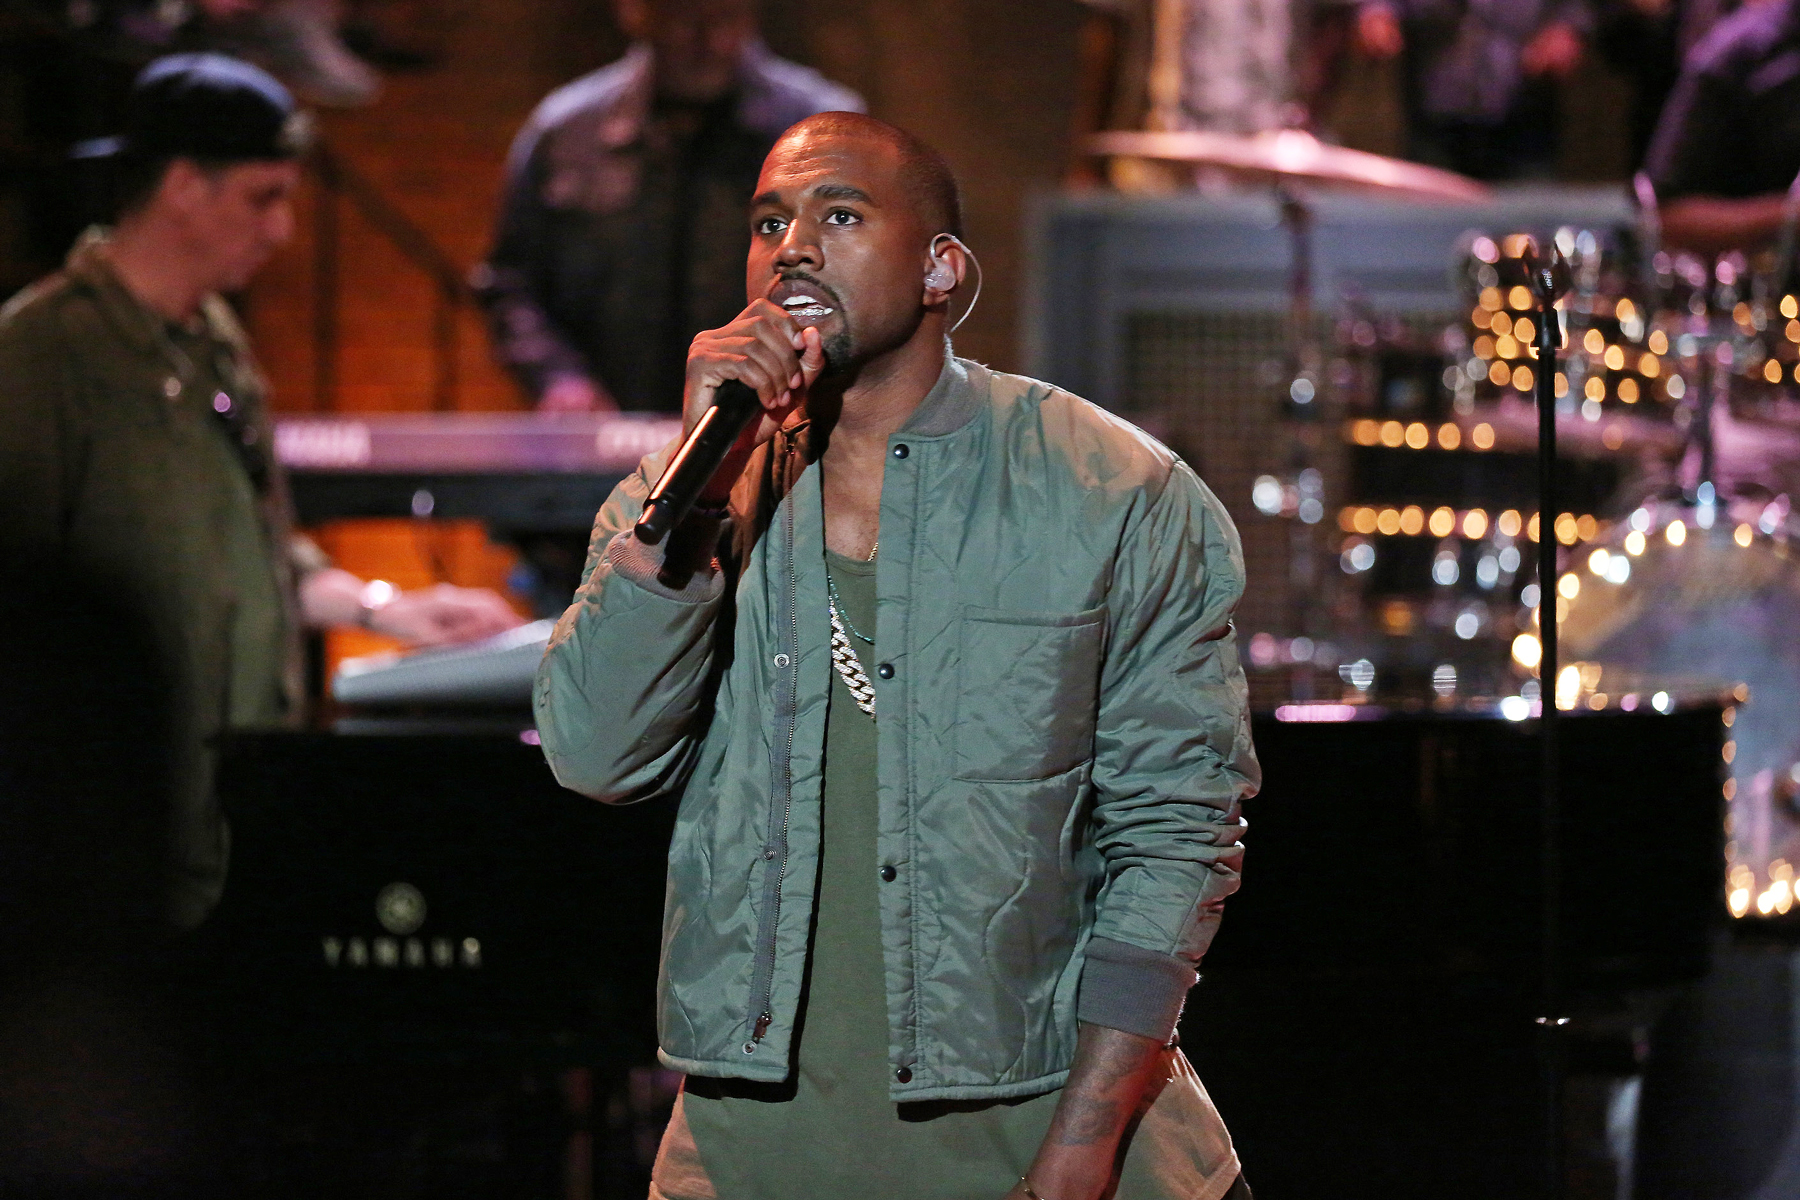 Kanye West performs on SNL on Monday, September 9, 2013.